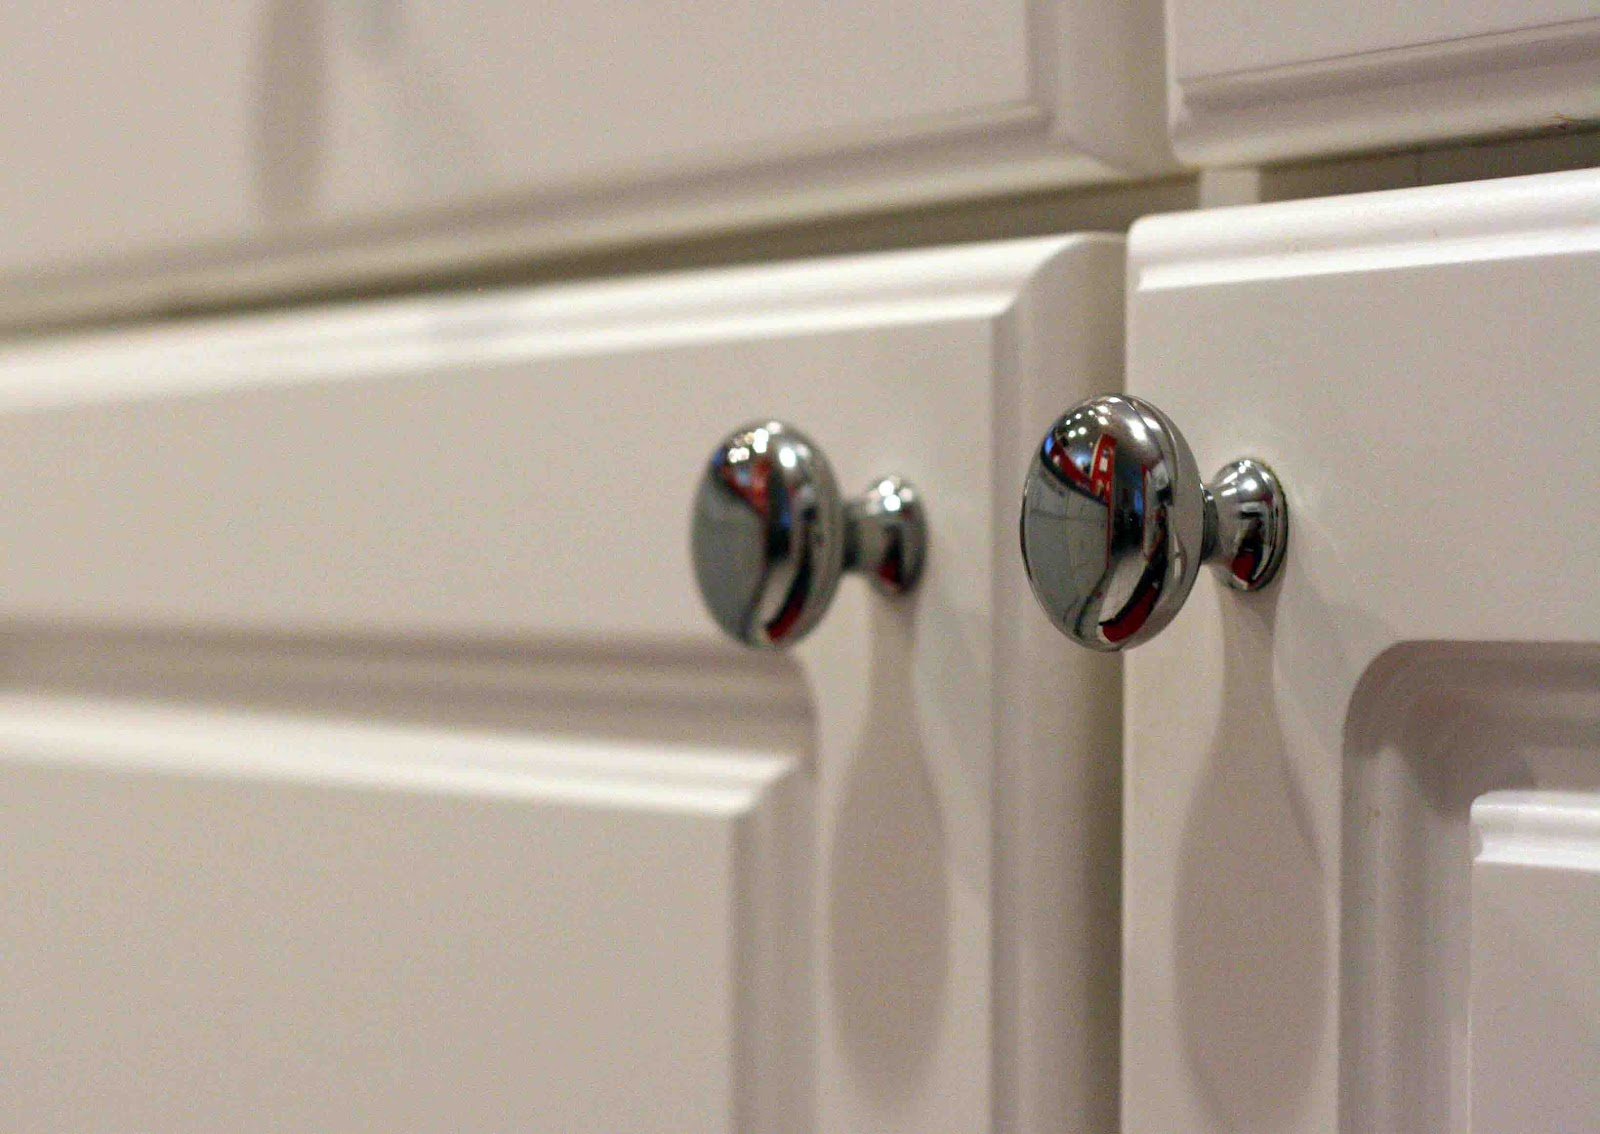 cabinet handles for kitchen utensil holder michael nash design build and homes fairfax virginia